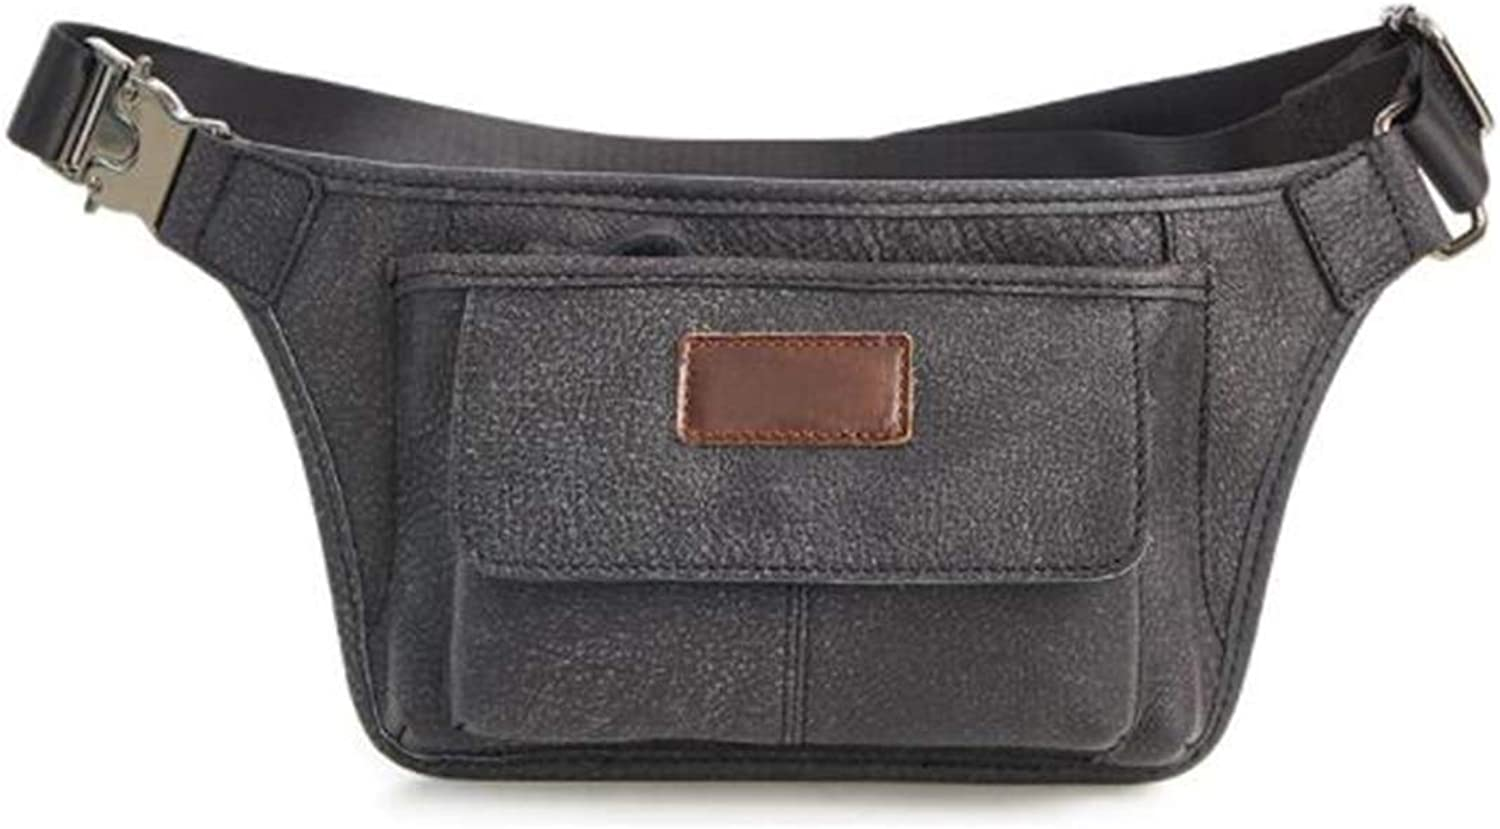 Sturdy West Pouch Body Handbag Out Genuine Leather for Exercise for Men Large Capacity (color   Black)